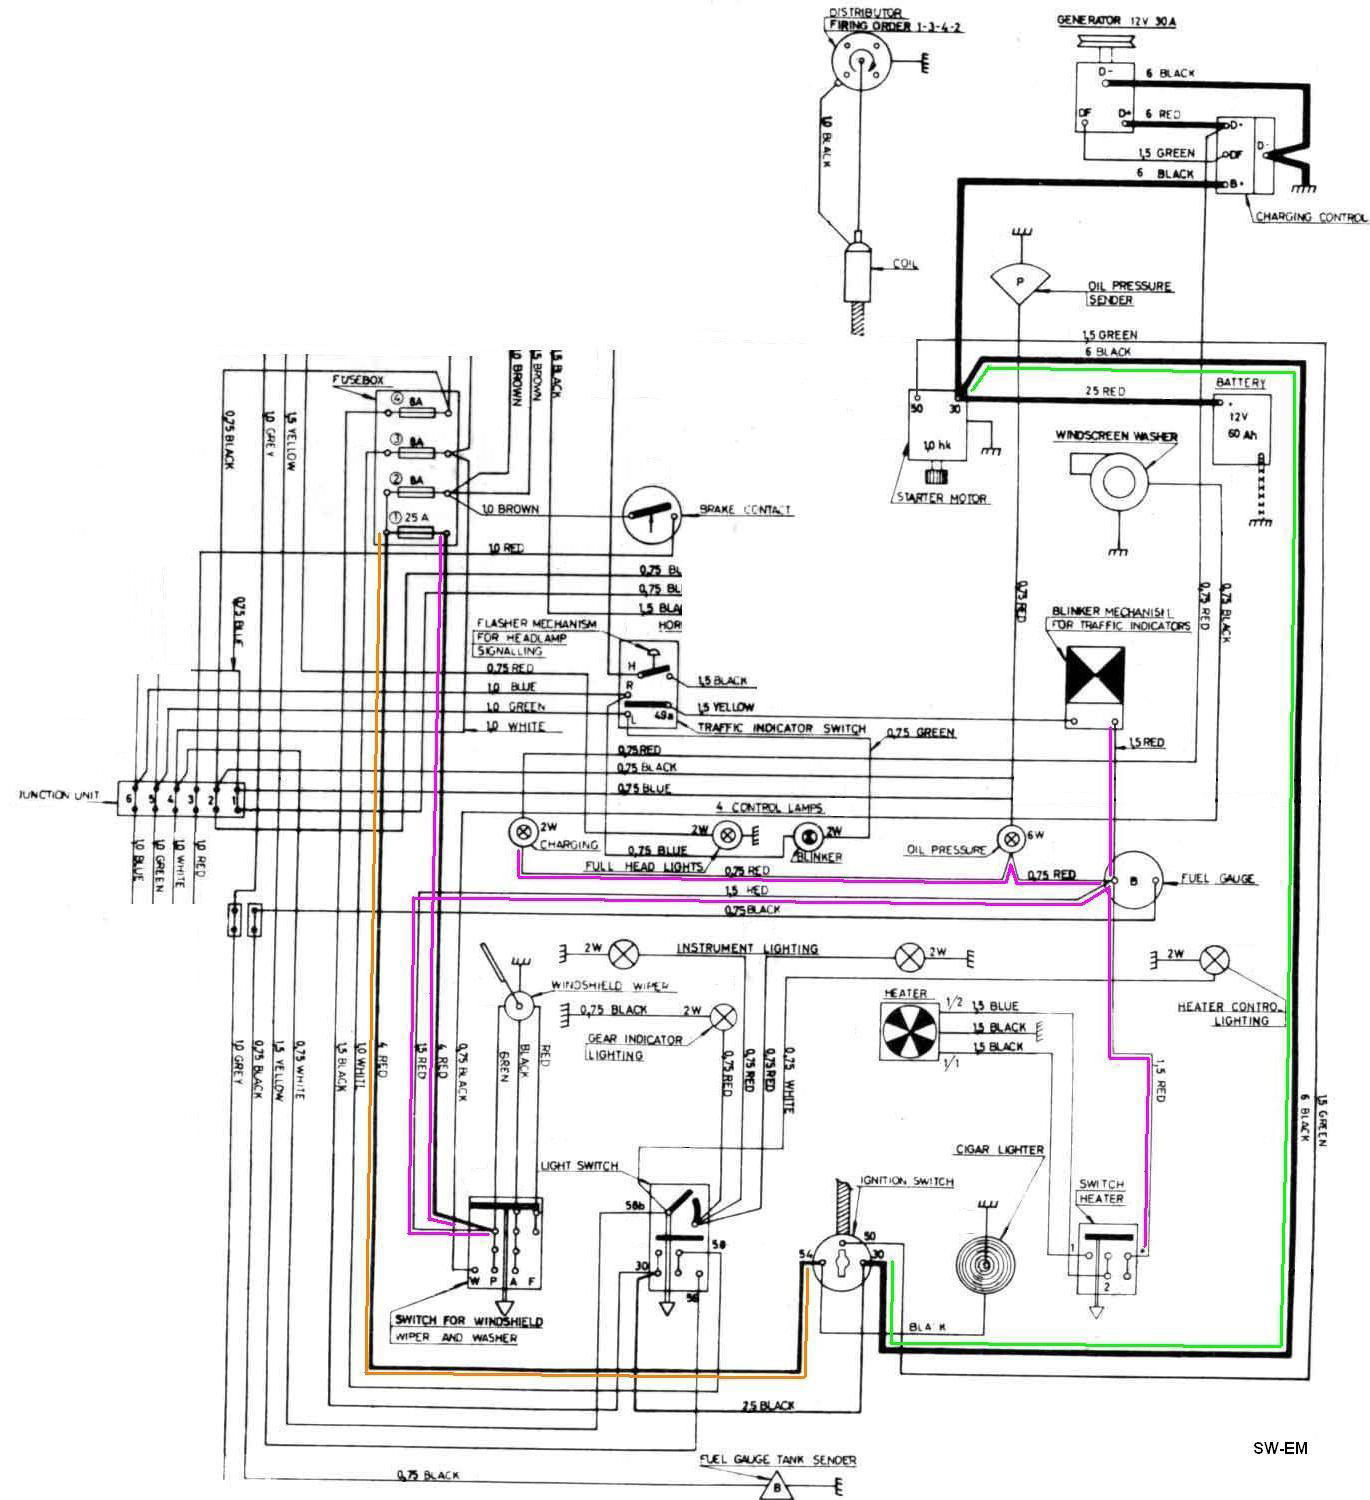 IGN SW wiring diag 122 markup 1800 ignition wiring swedish vs british design volvo penta wiring harness diagram at sewacar.co